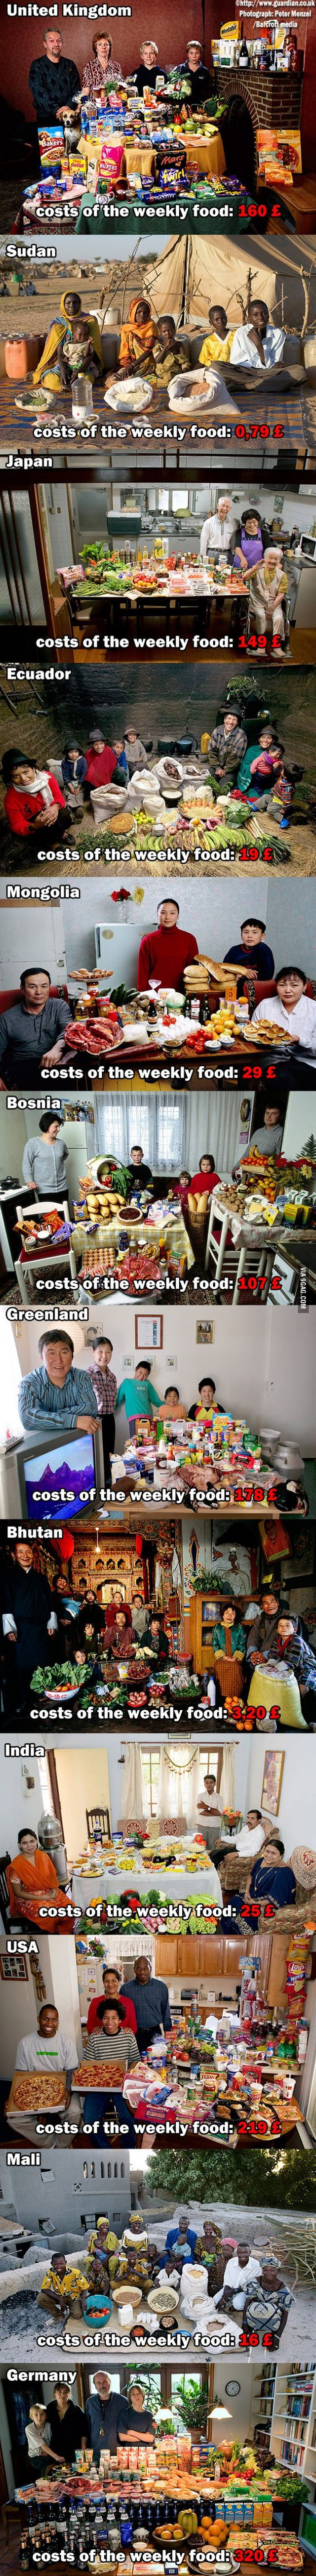 food-prices-around-world2